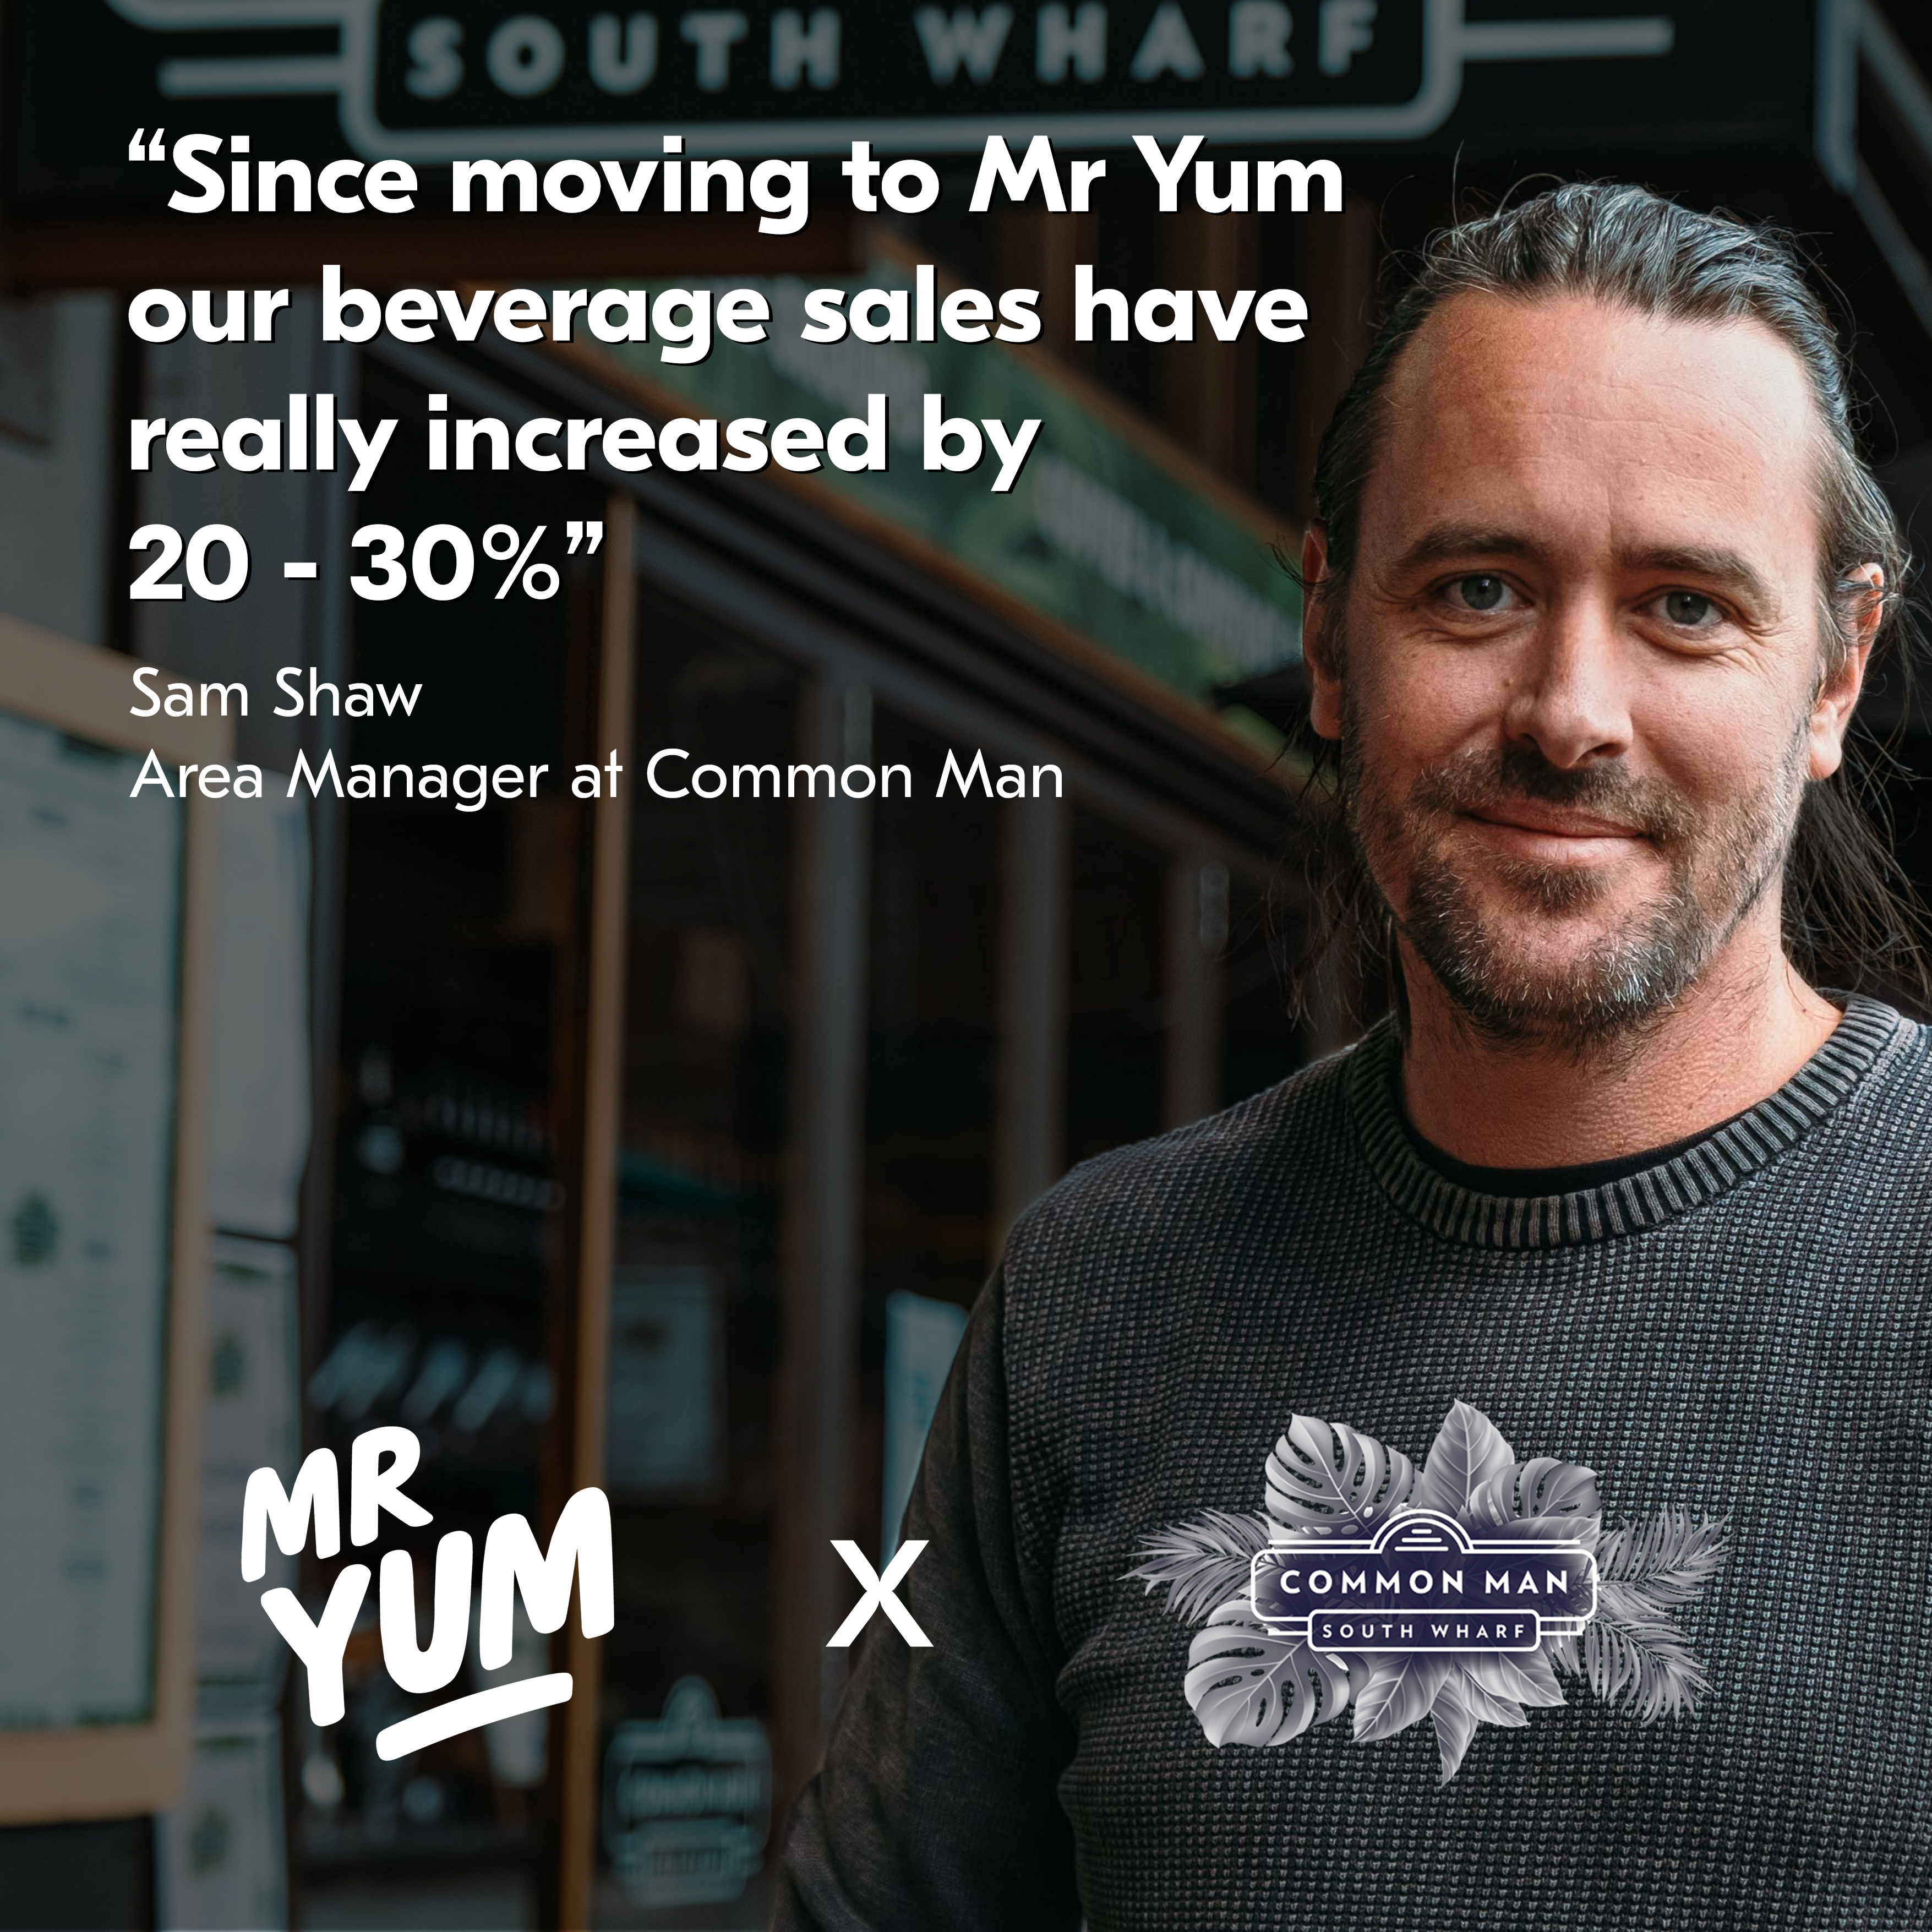 Common Man quote story (VIC)